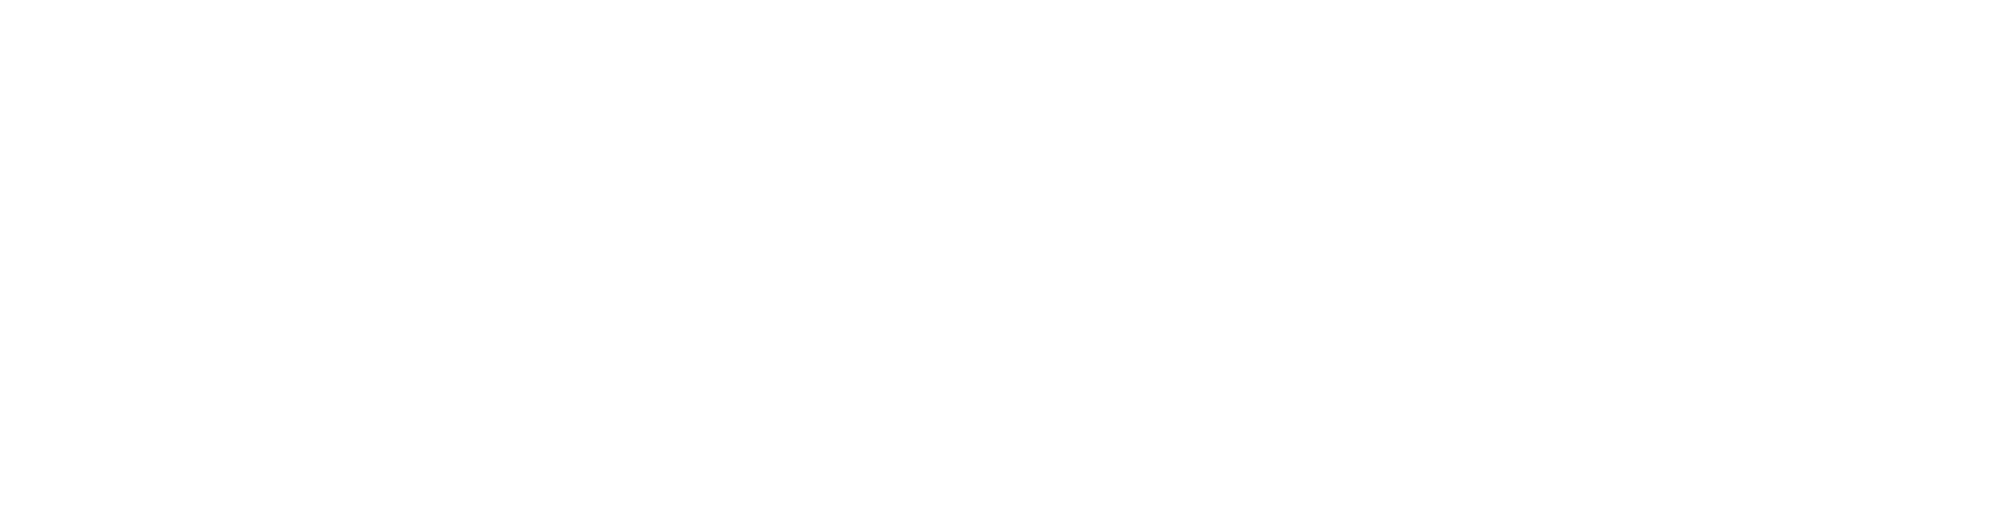 https://d2ma3mz8xlyv9f.cloudfront.net/wp-content/uploads/2019/06/27095755/Forbes_logo_white.png